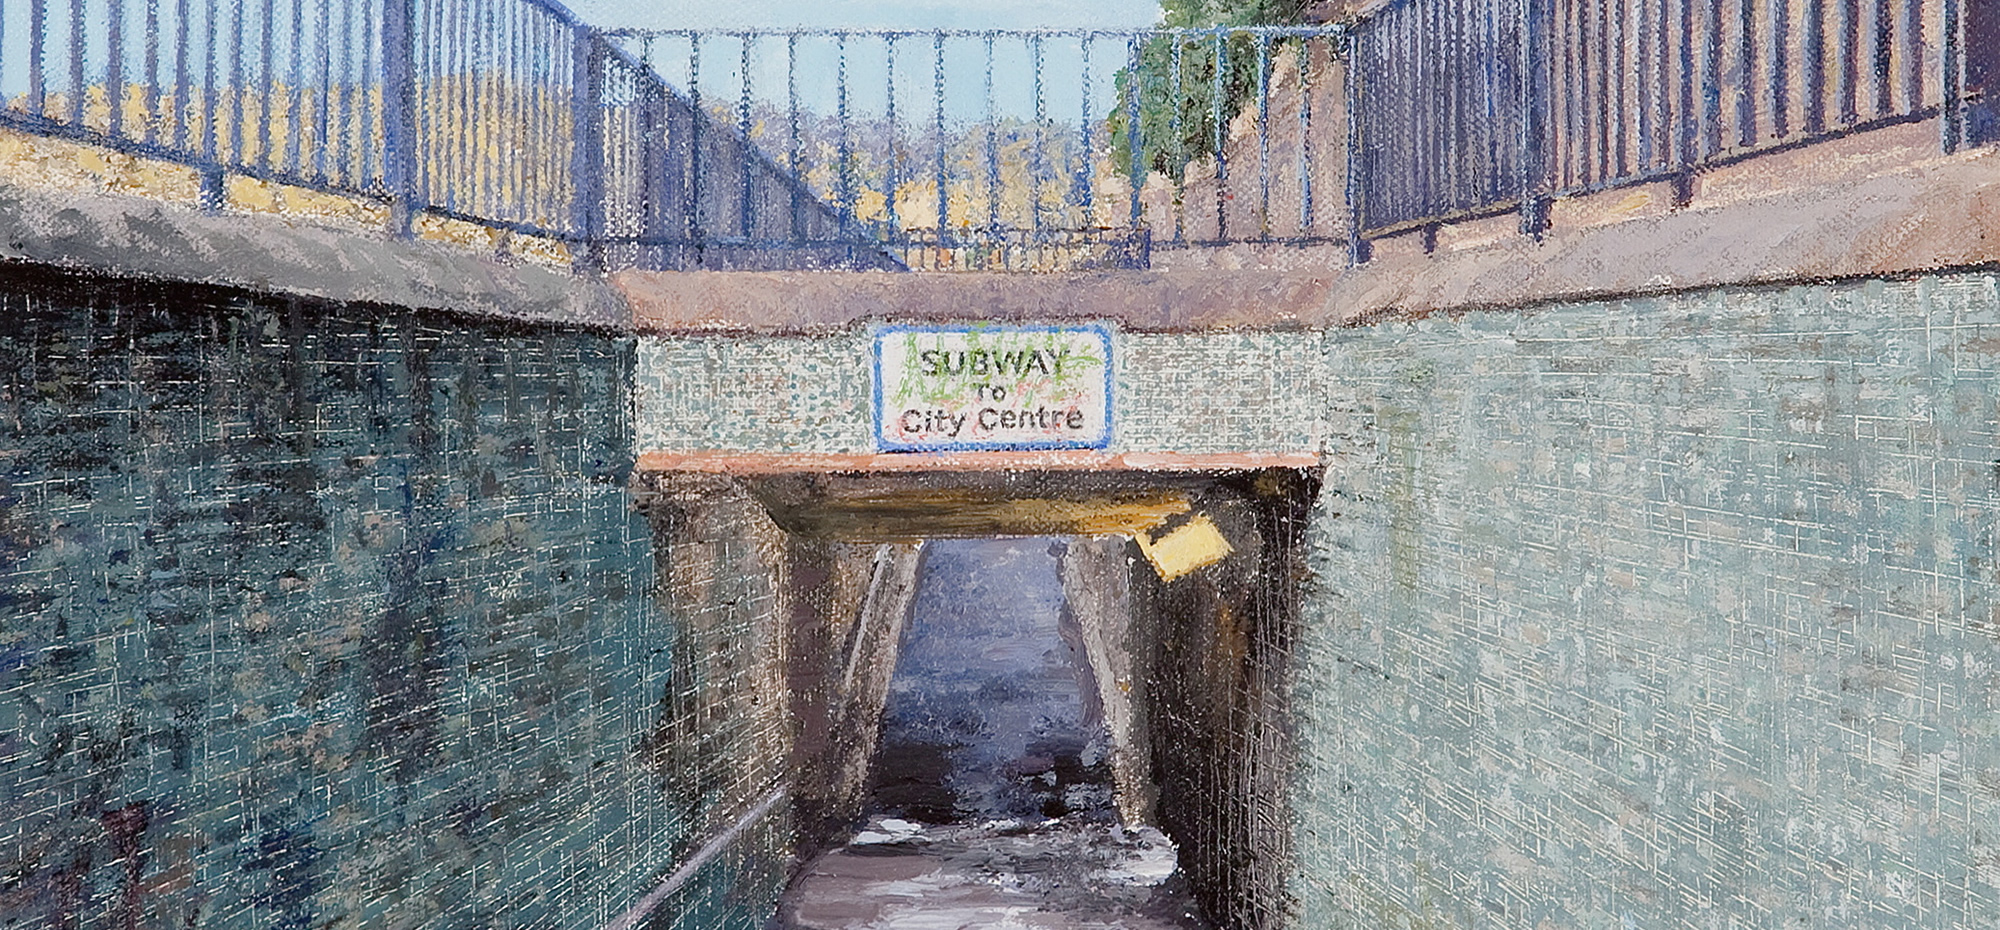 Subway one - Simon Hopkinson Art1